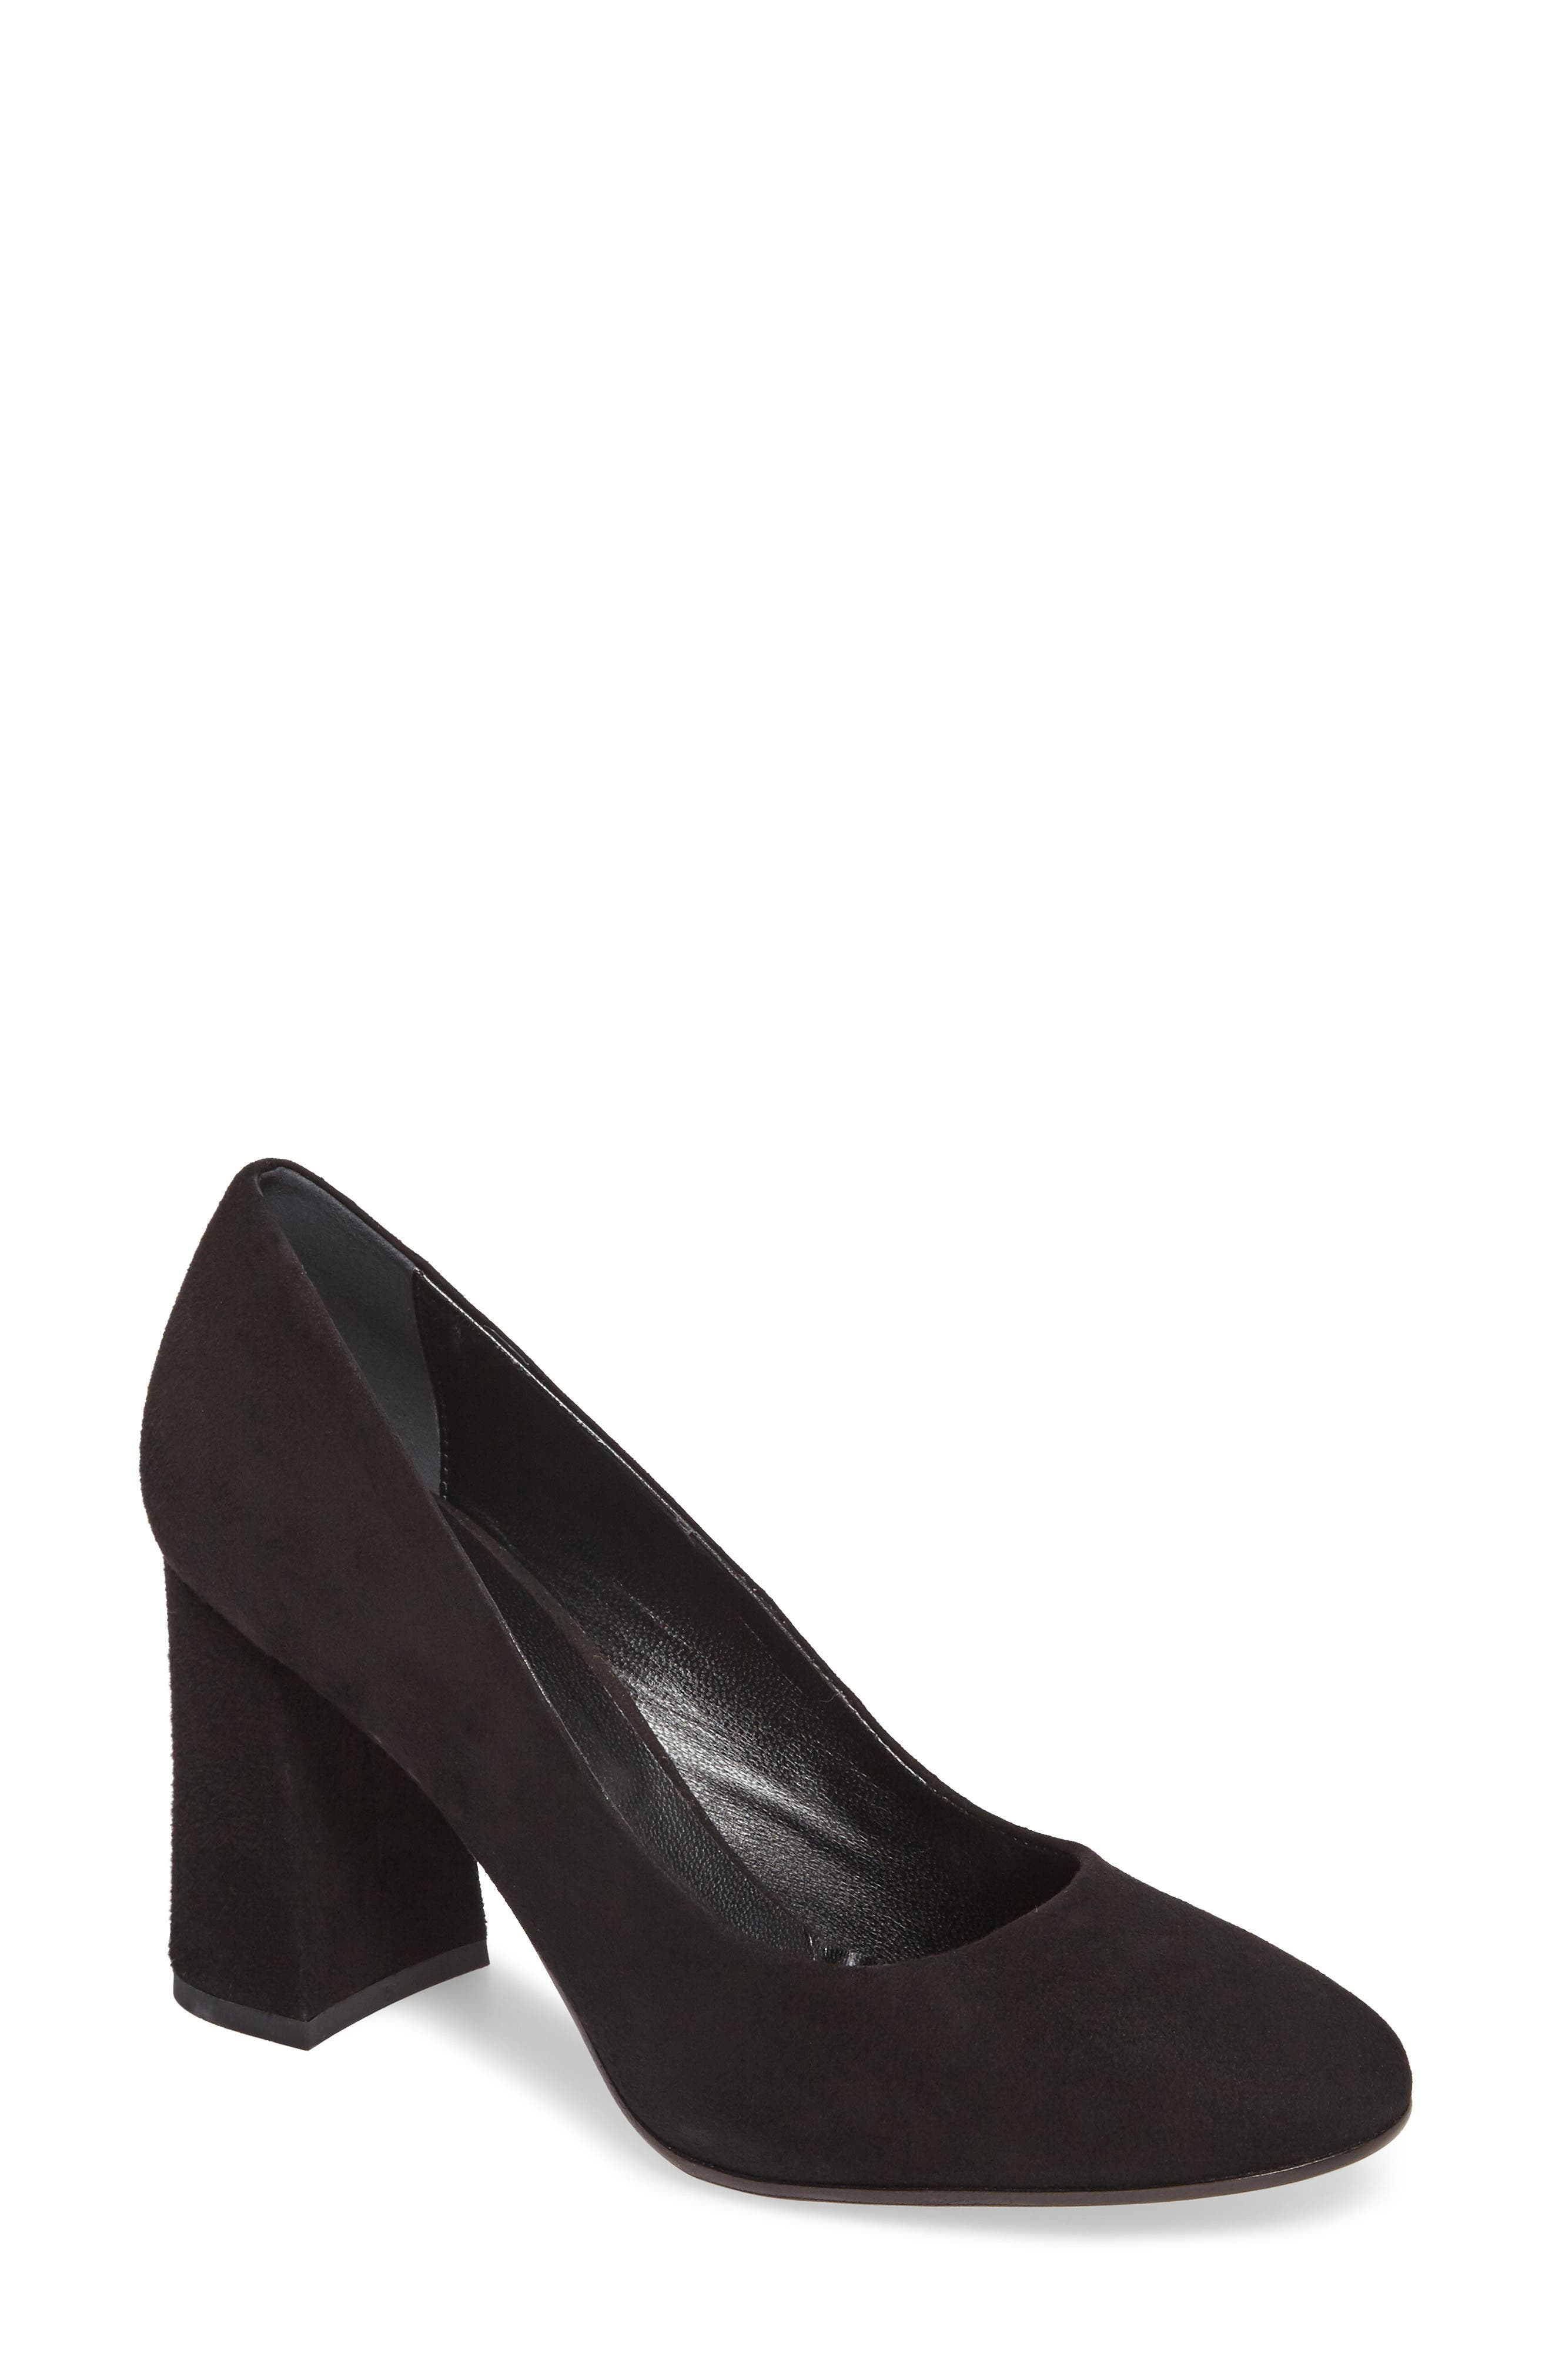 Hanette Pump,                         Main,                         color, BLACK SUEDE